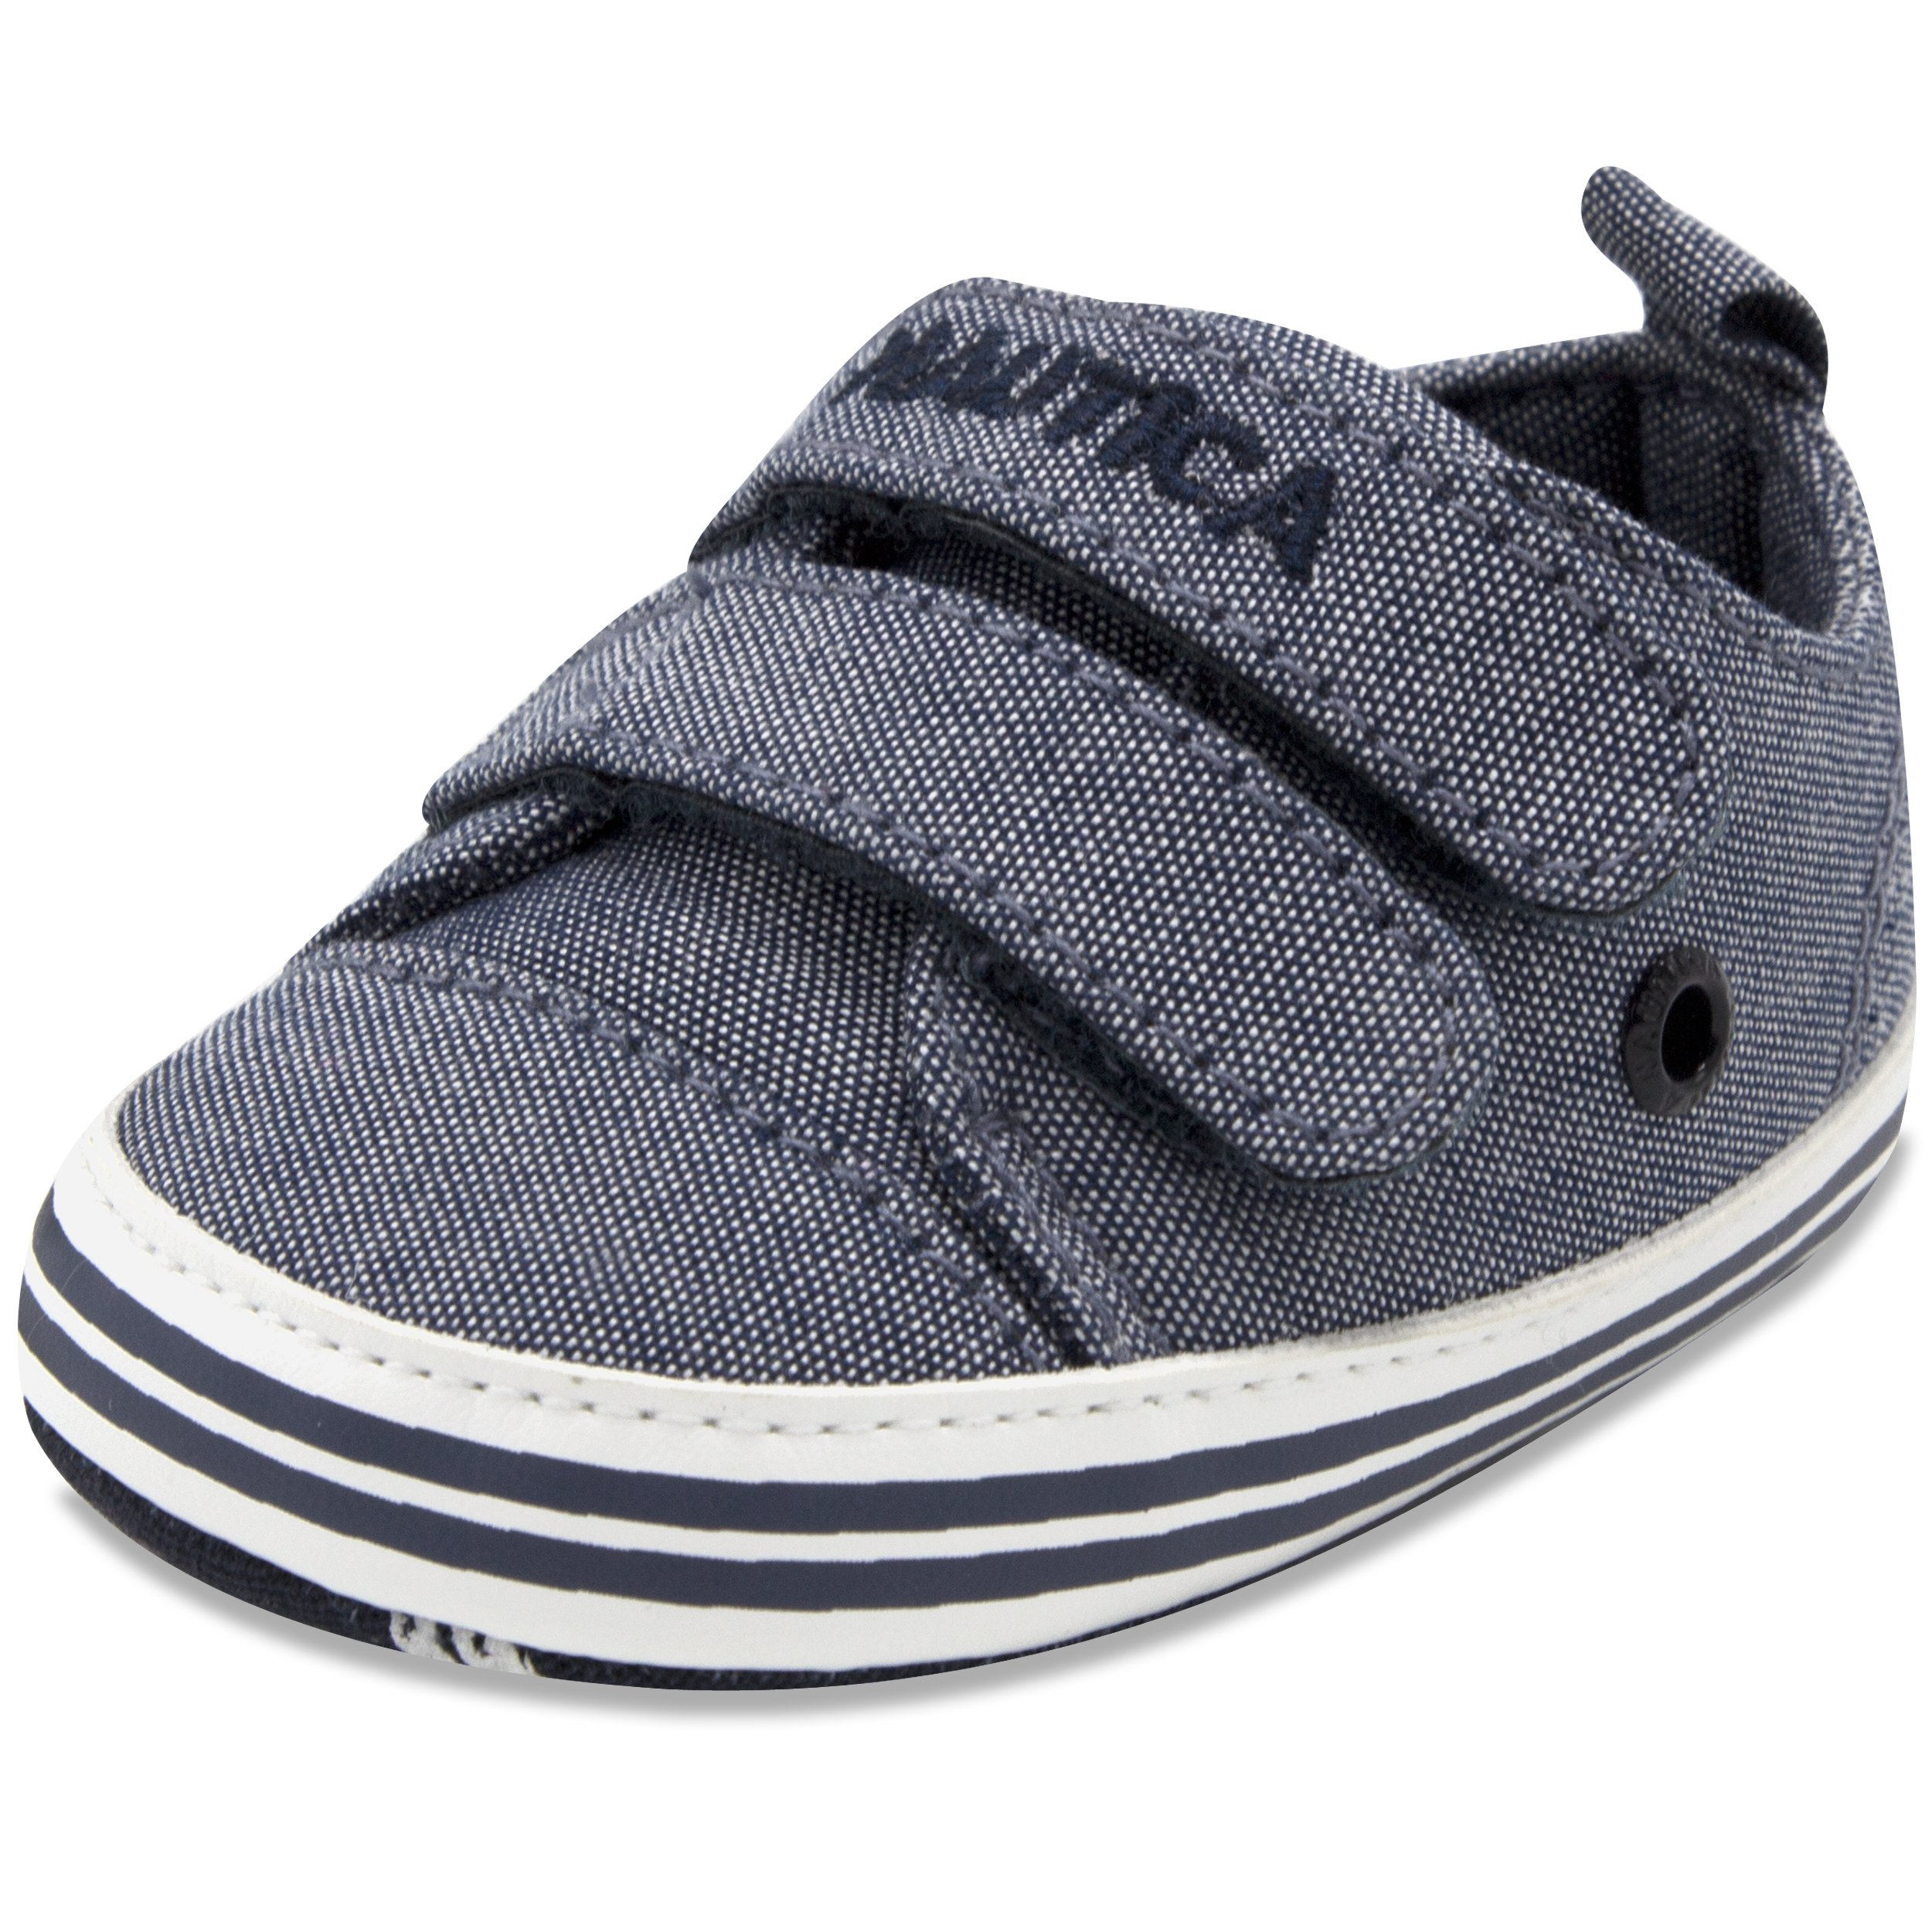 Nautica Tiny Bobstay, Baby Prewalker, Crib Sneakers, Toddler/Infant Soft Sole Shoes Denim-2